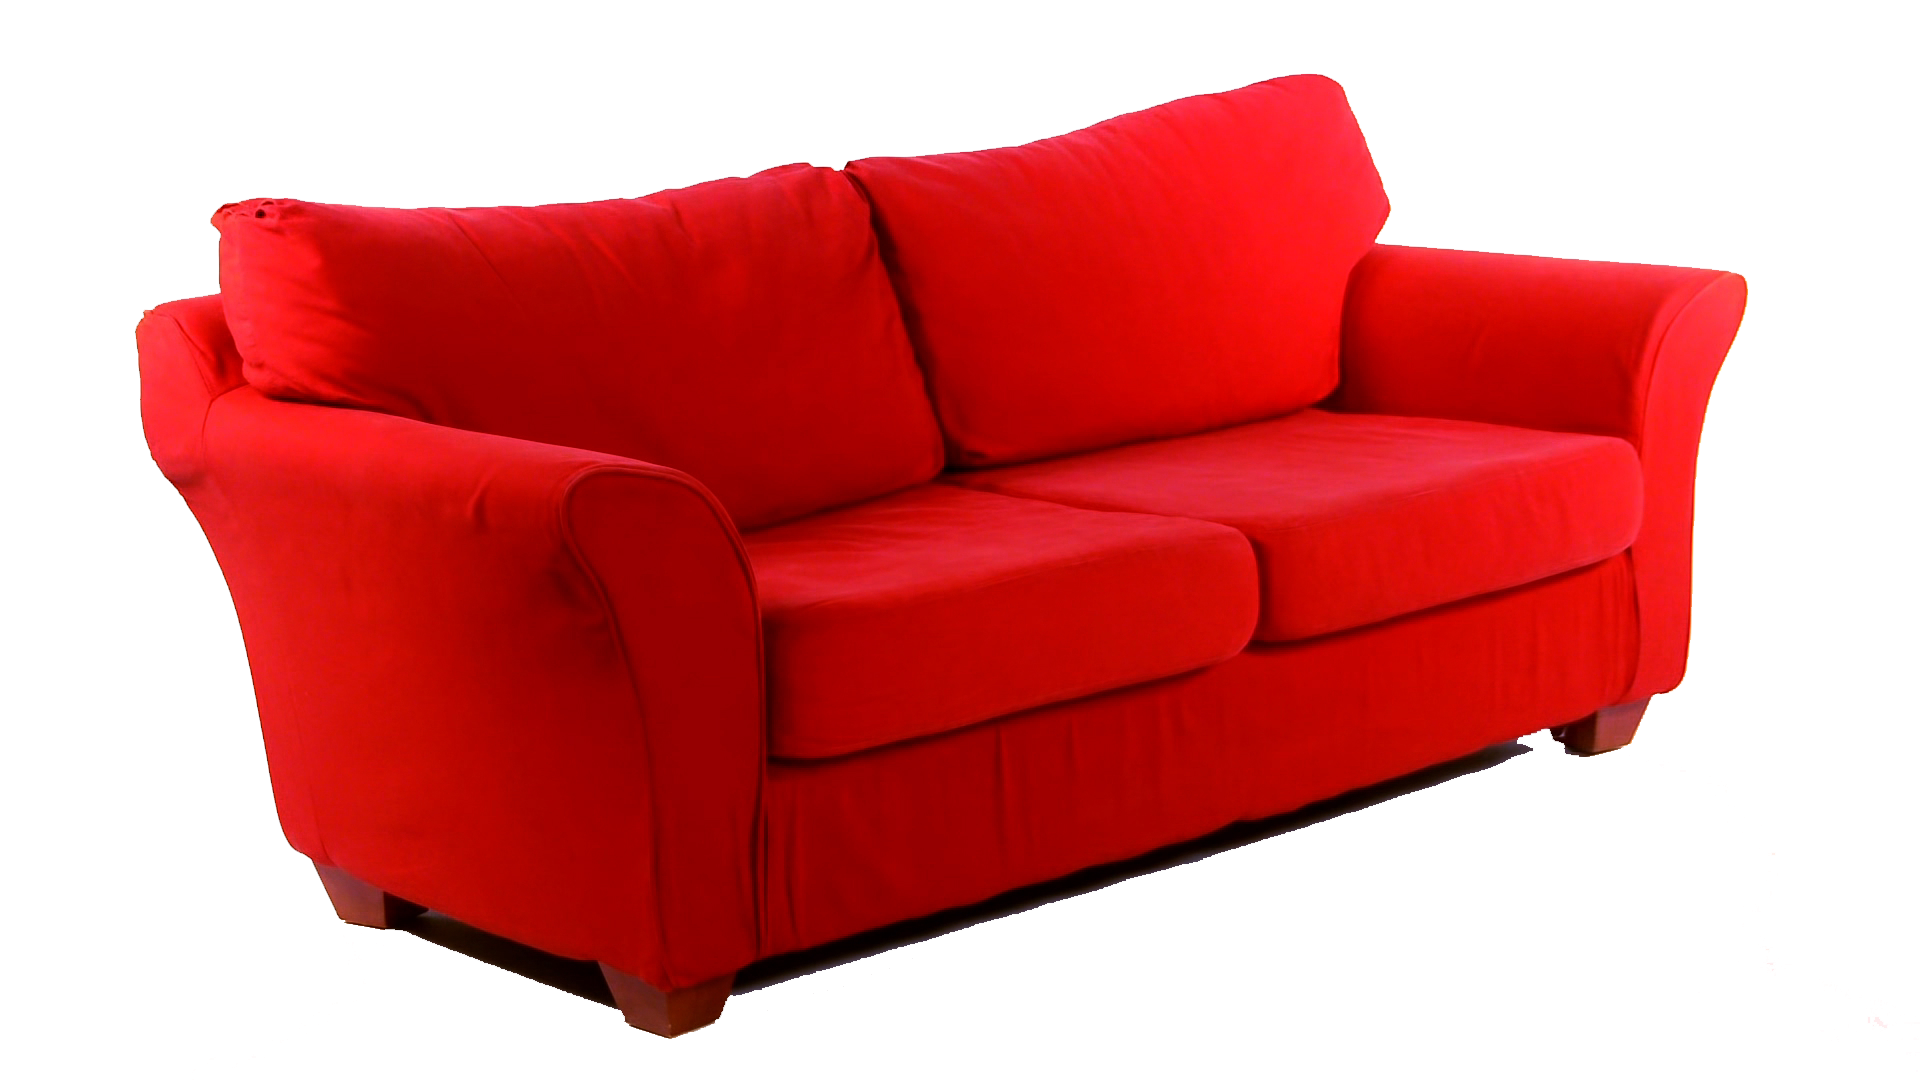 The Amazing Red Sofa Recliner Png 1899